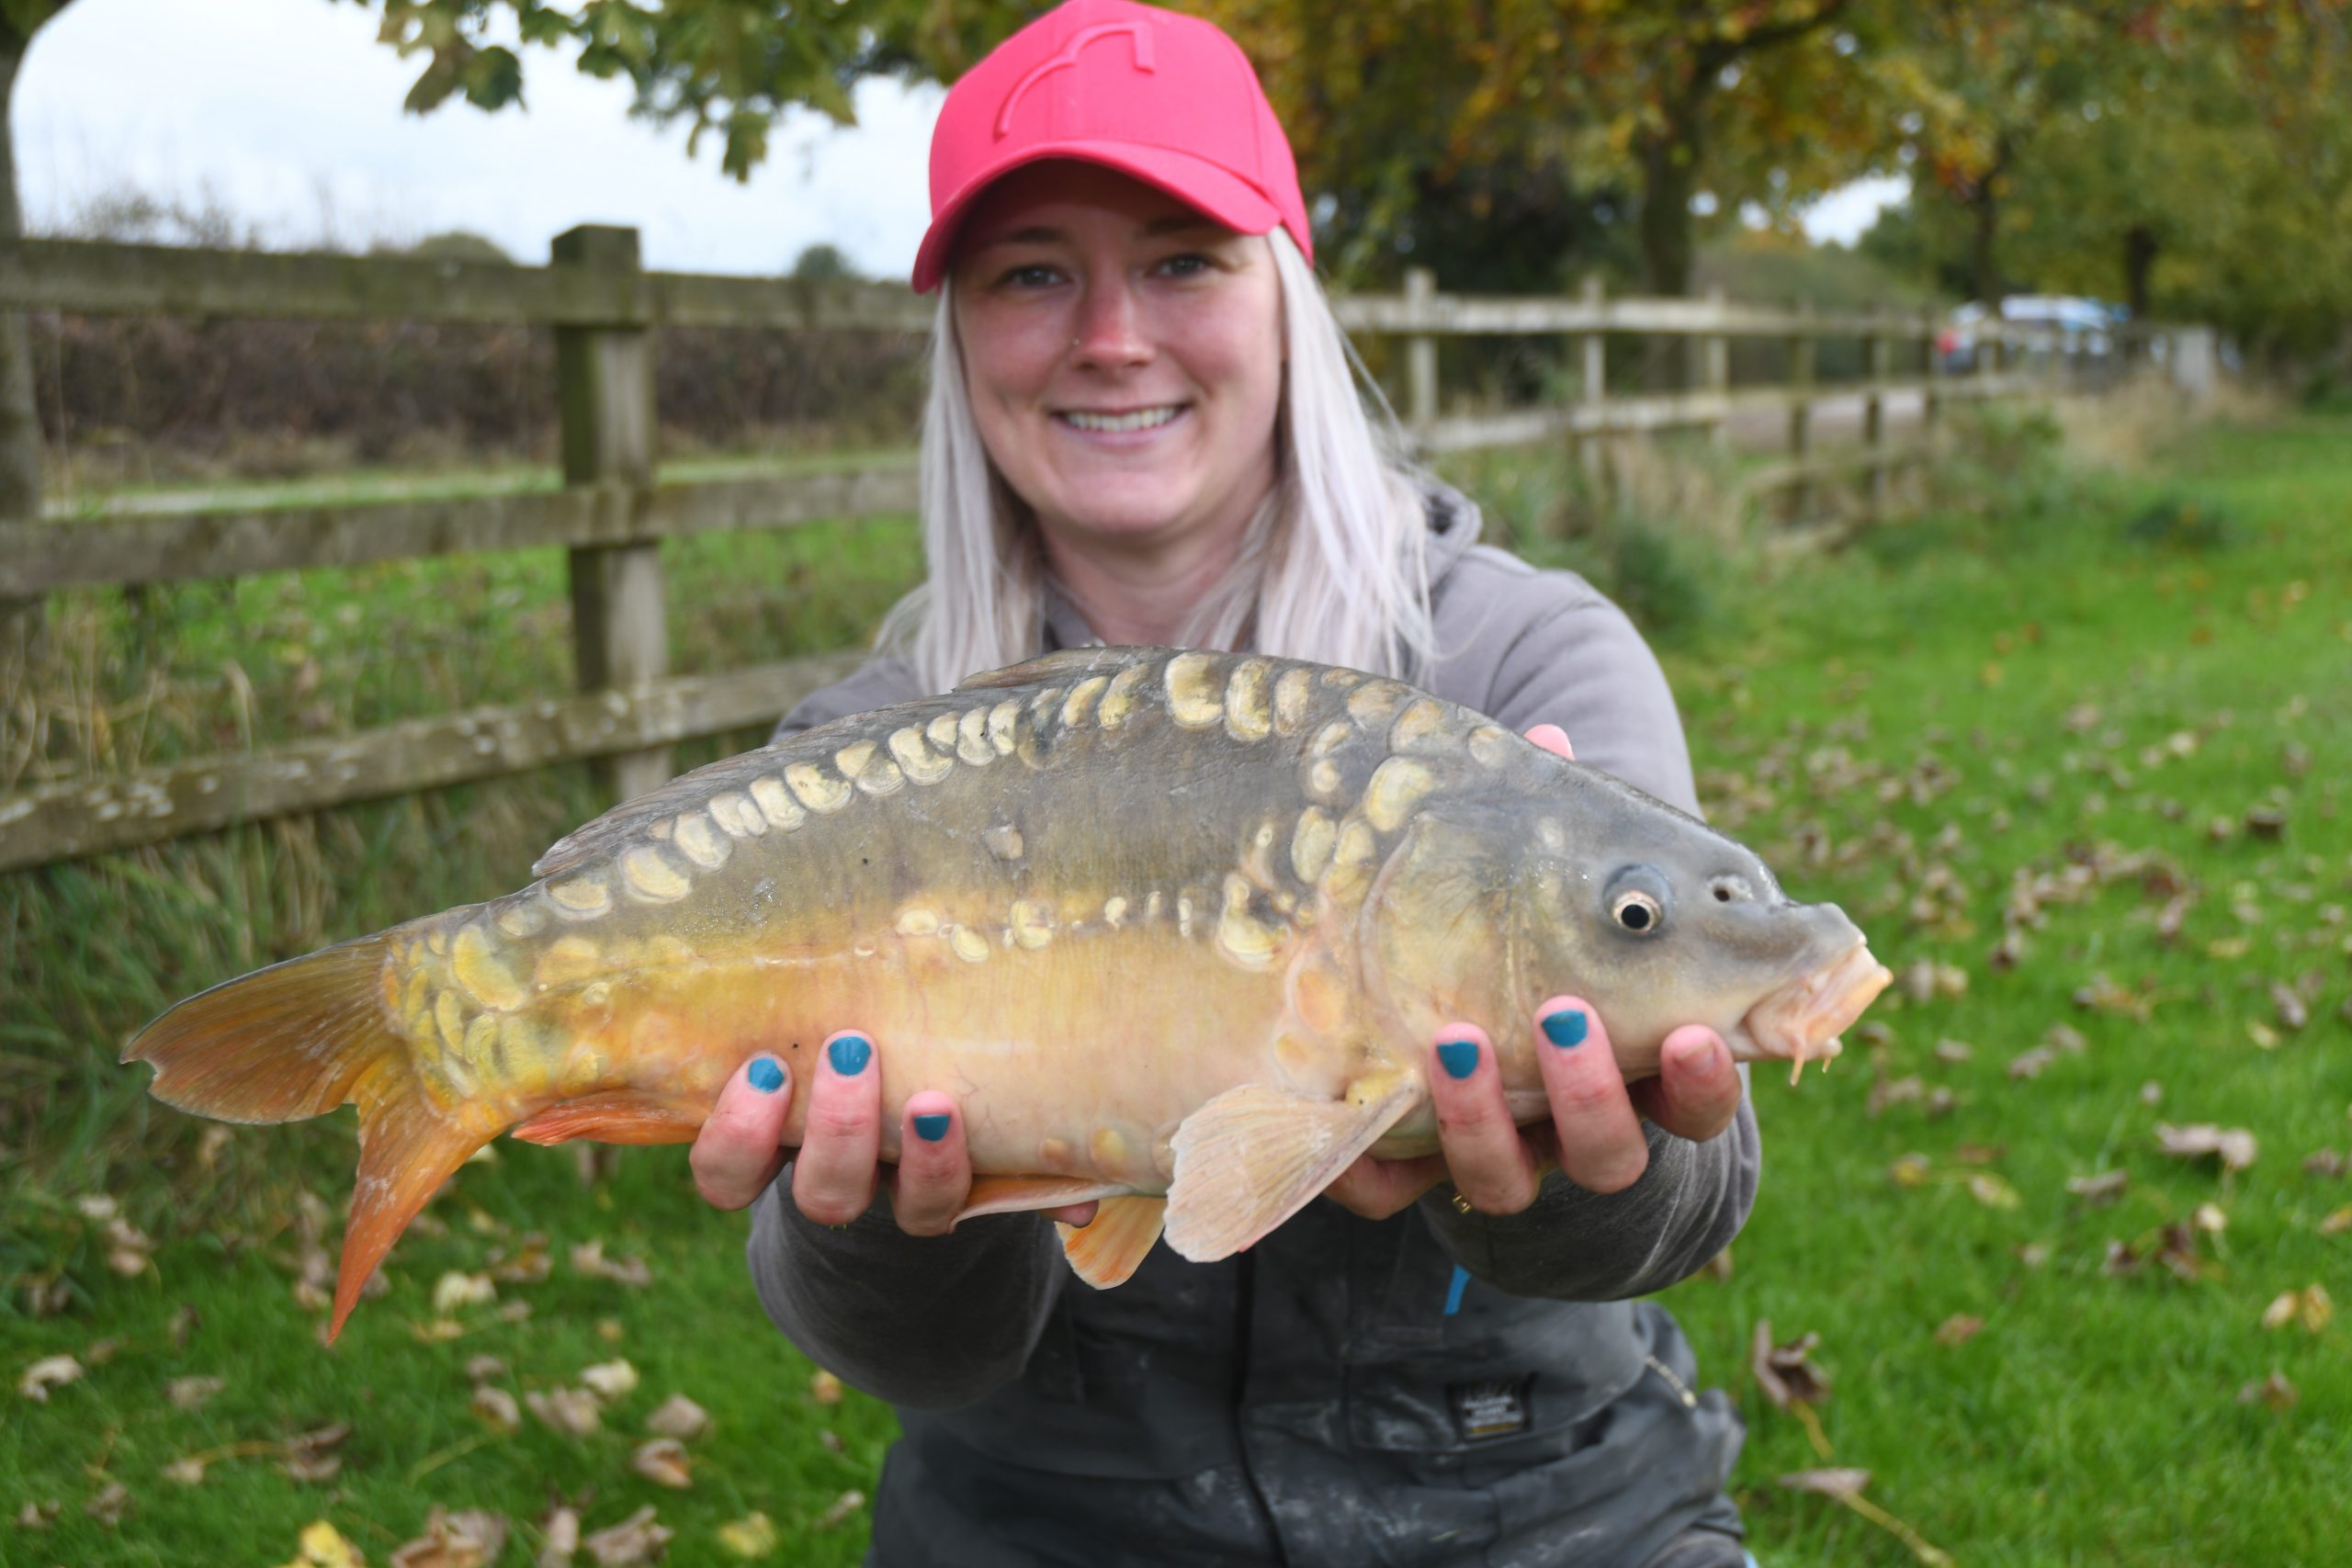 Get Fishing - Emma Harrison Fishing with a carp at a commercial fishery-3